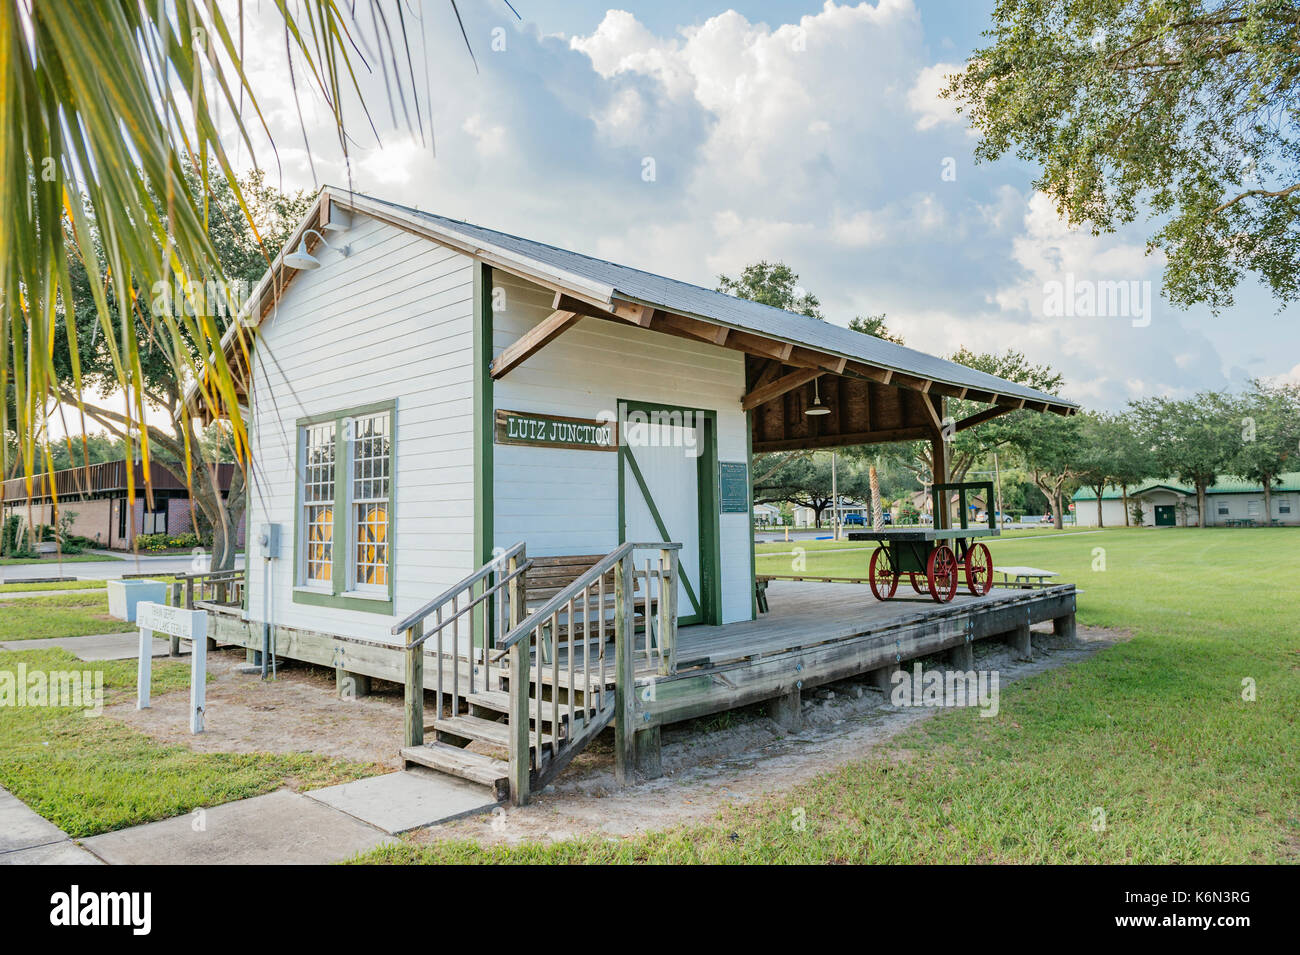 A replica of the small Lutz Depot a stop on the Tampa Northern Railroad, which became Seaboard, in the early 1900's. Lutz, Florida, USA. - Stock Image